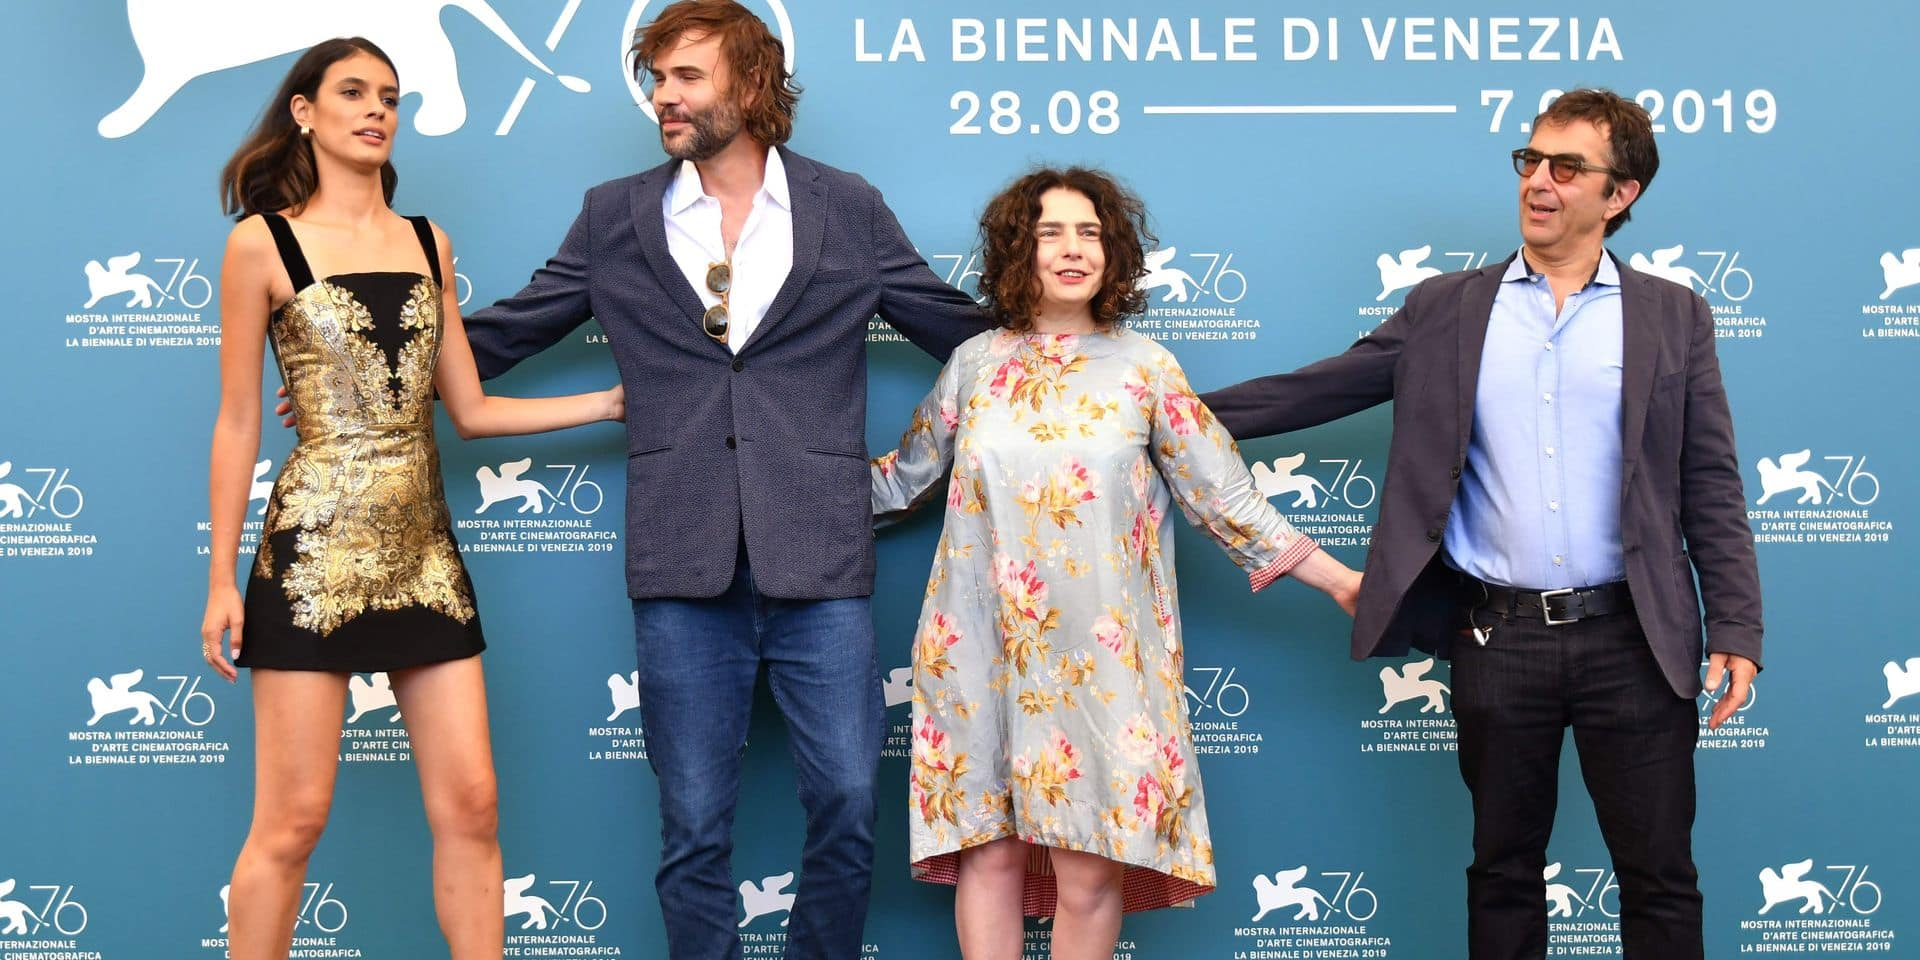 """(From L) Brazilian actress Laysla De Oliveira, Canadian actor Rossif Sutherland, Lebanese actress Arsinee Khanjian and Canadian director Atom Egoyan pose during the photocall for the film """"Guest of Honour"""", presented in competition on September 3, 2019 during the 76th Venice Film Festival at Venice Lido. (Photo by Alberto PIZZOLI / AFP)"""